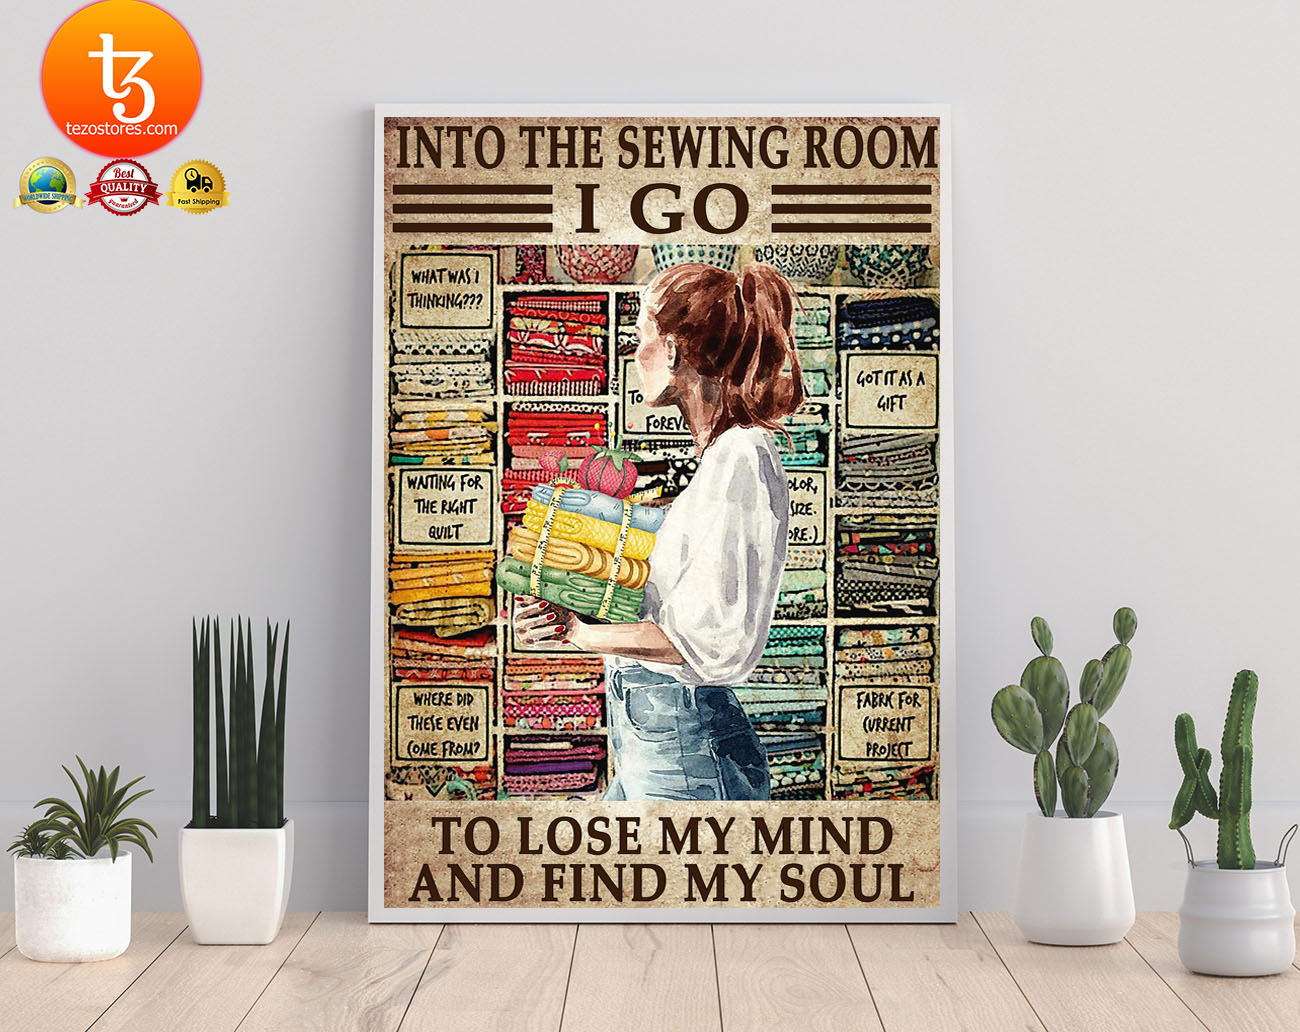 Into the sewing room i go to lose my mind and find my soul poster 21